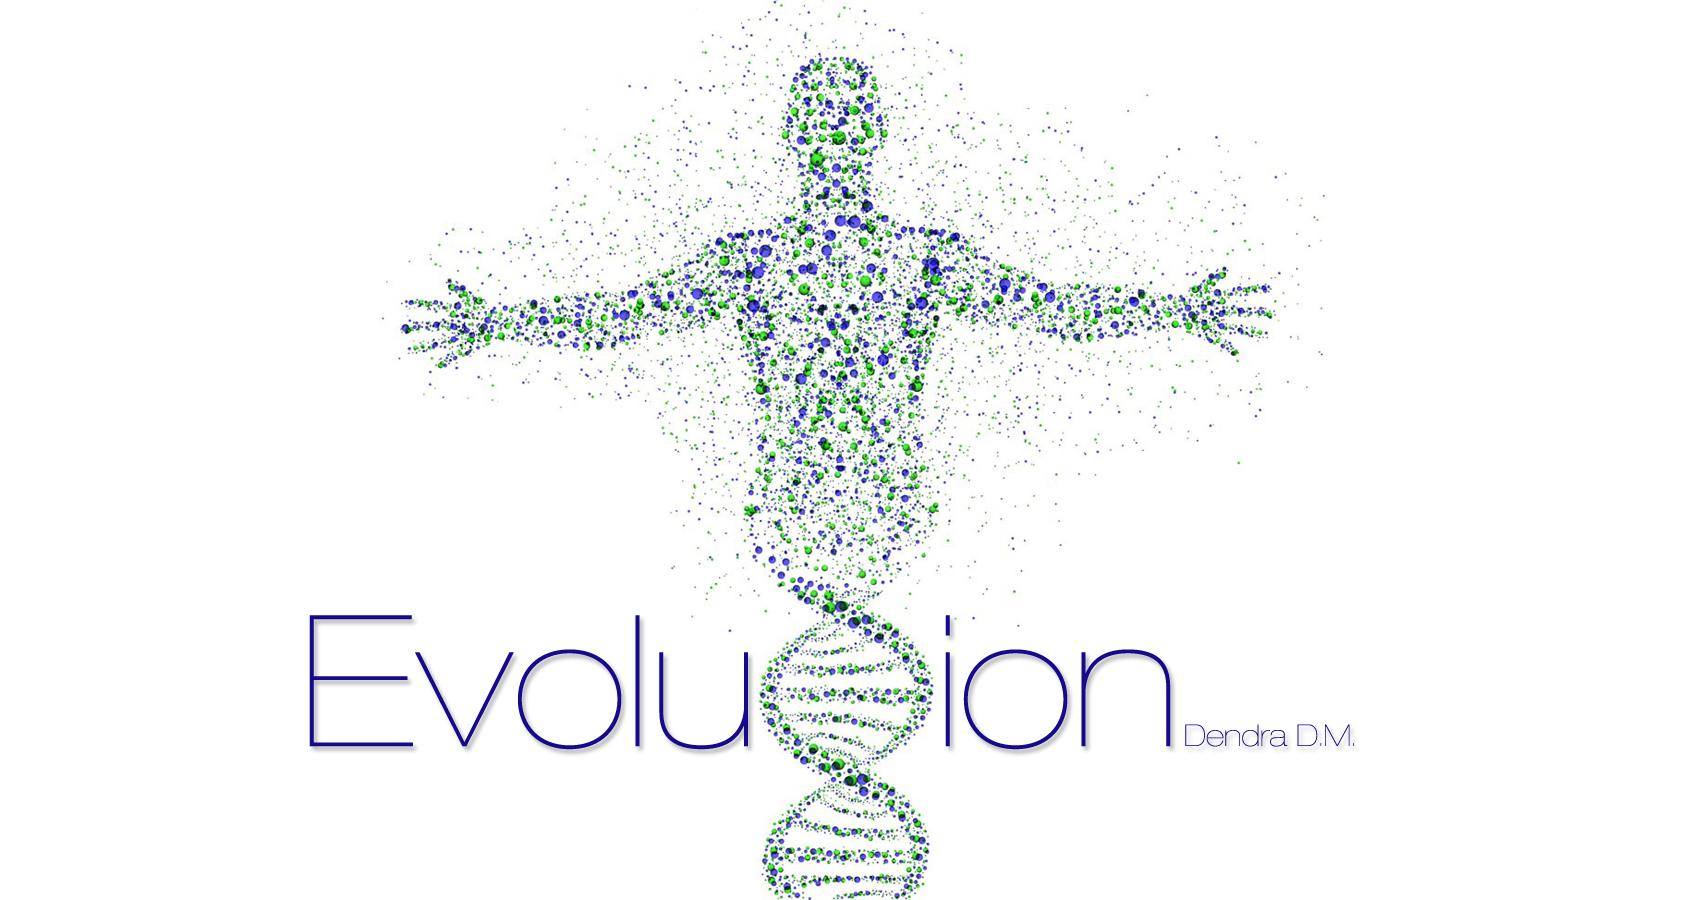 Evolution by Dendra D.M. at Spillwords.com